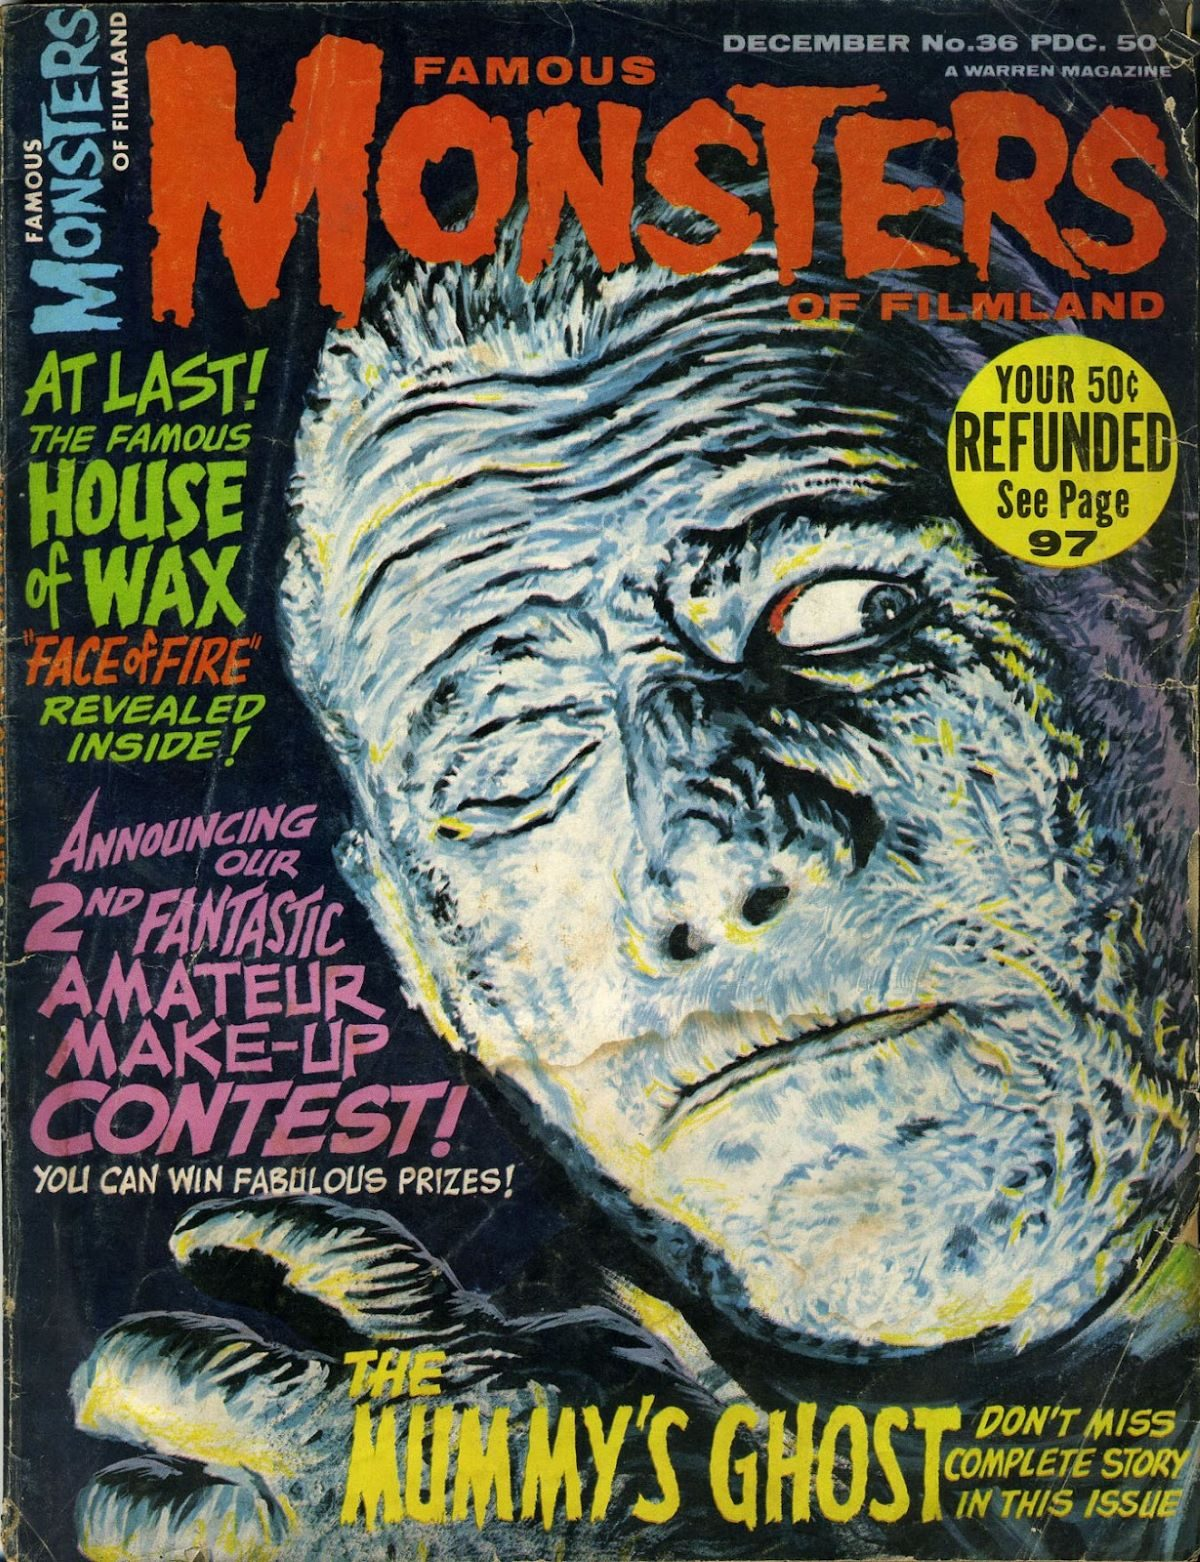 Famous Monsters of Filmland, magazine, horror films, The Mummy's Ghost, 1960s